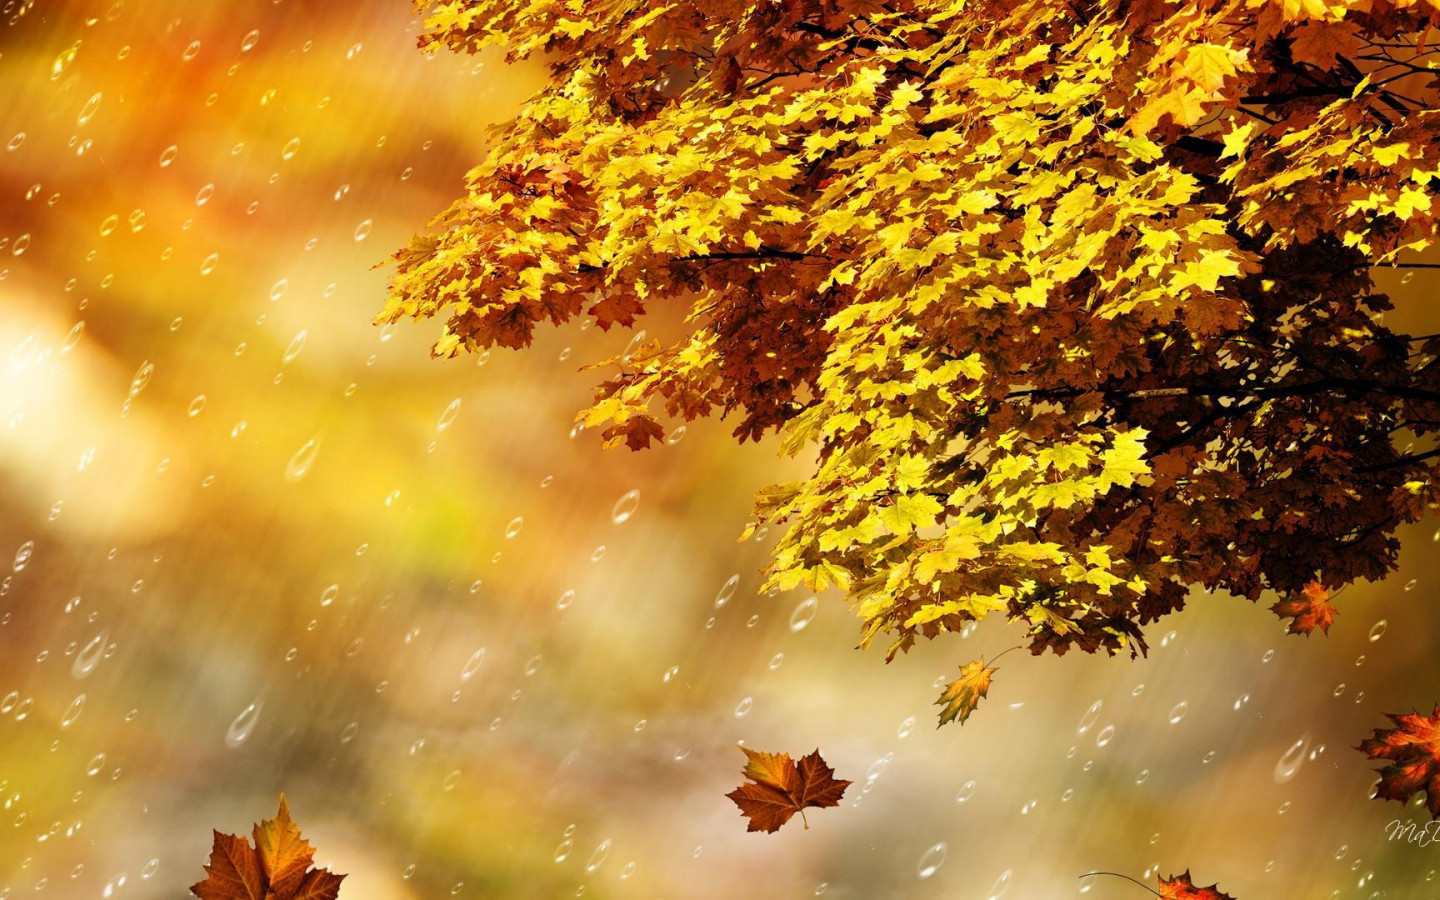 Computer Desktop Hd Wallpapers Fall Fall Rain Shower Hd Desktop Wallpaper Widescreen High